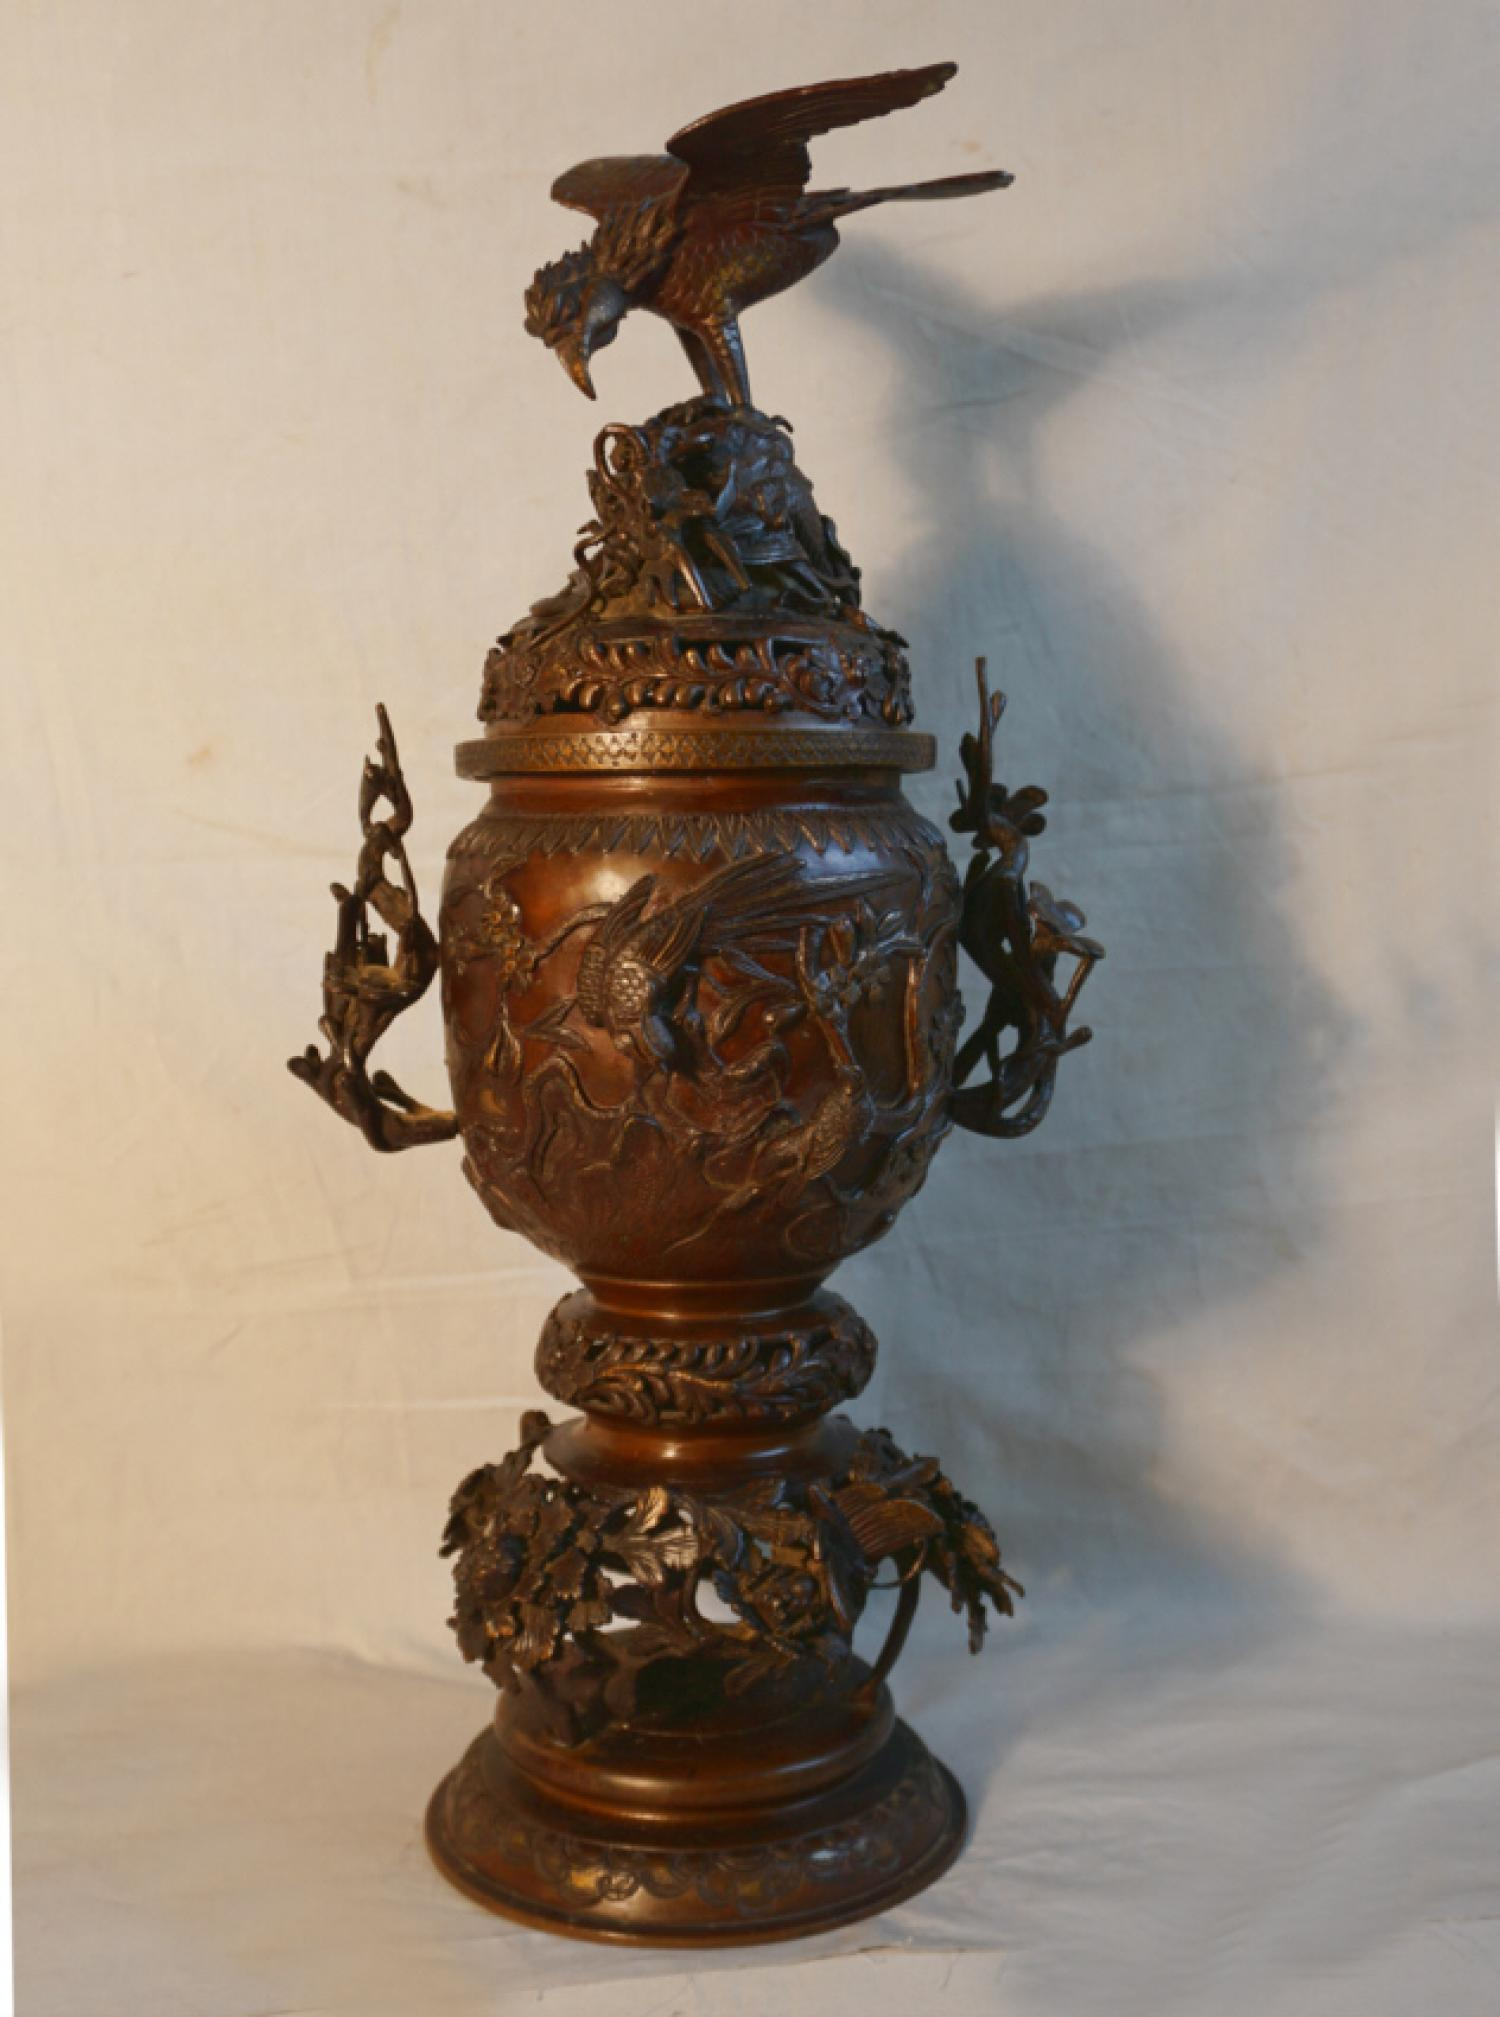 Antique Japanese bronze incense urn with eagle finial